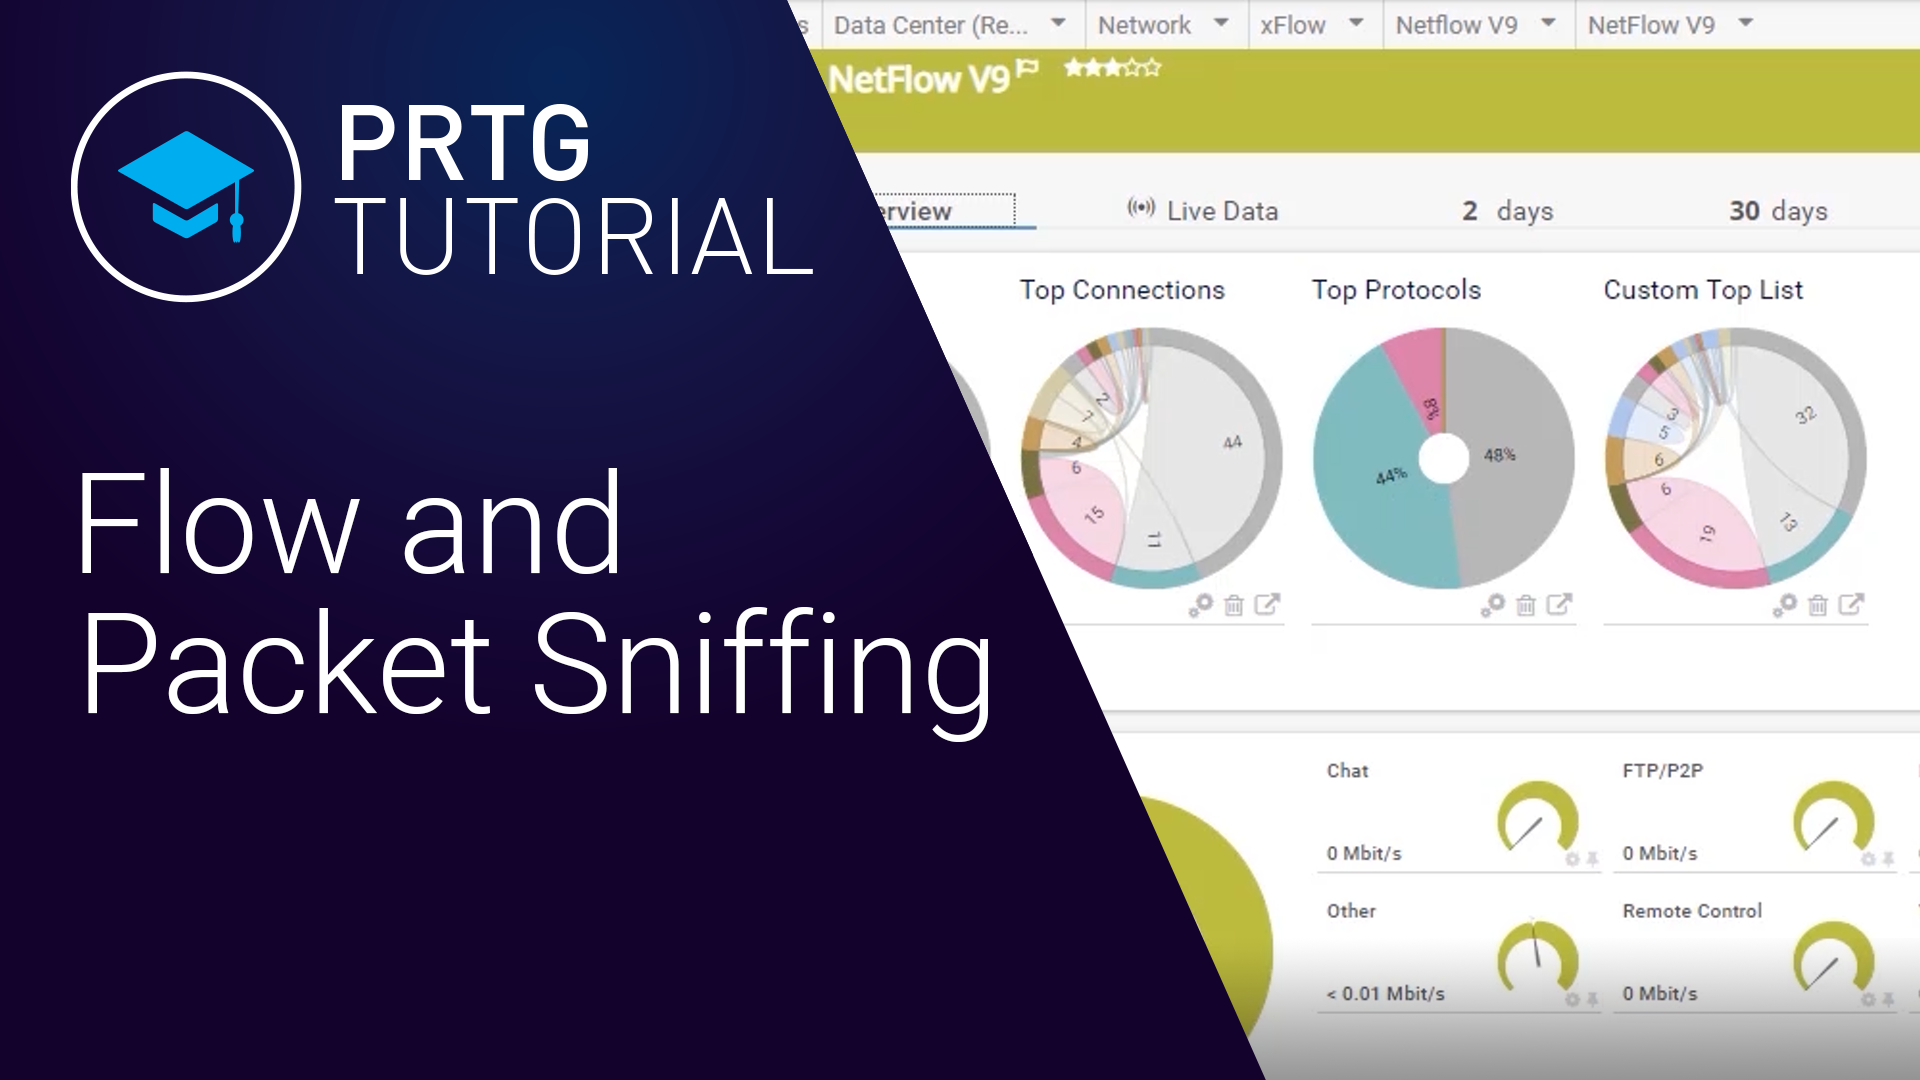 Video: PRTG Network Monitor – Bandwidth Monitoring with Flows and Packet Sniffing (Videos, Bandwidth, Traffic & Flow)